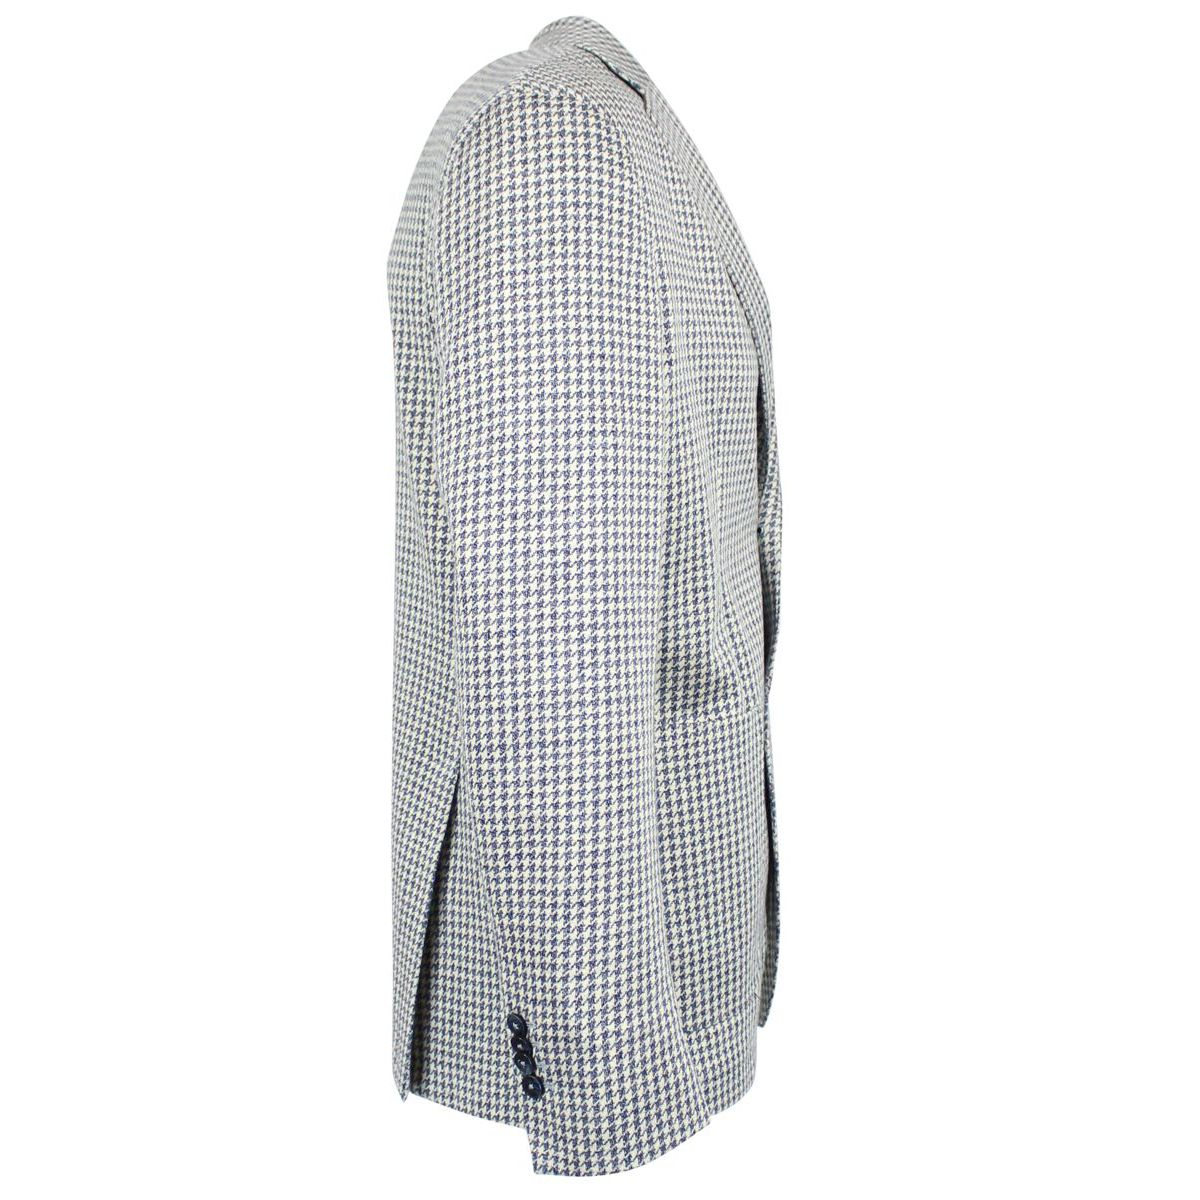 Regular single-breasted houndstooth jacket Grey L.B.M. 1911